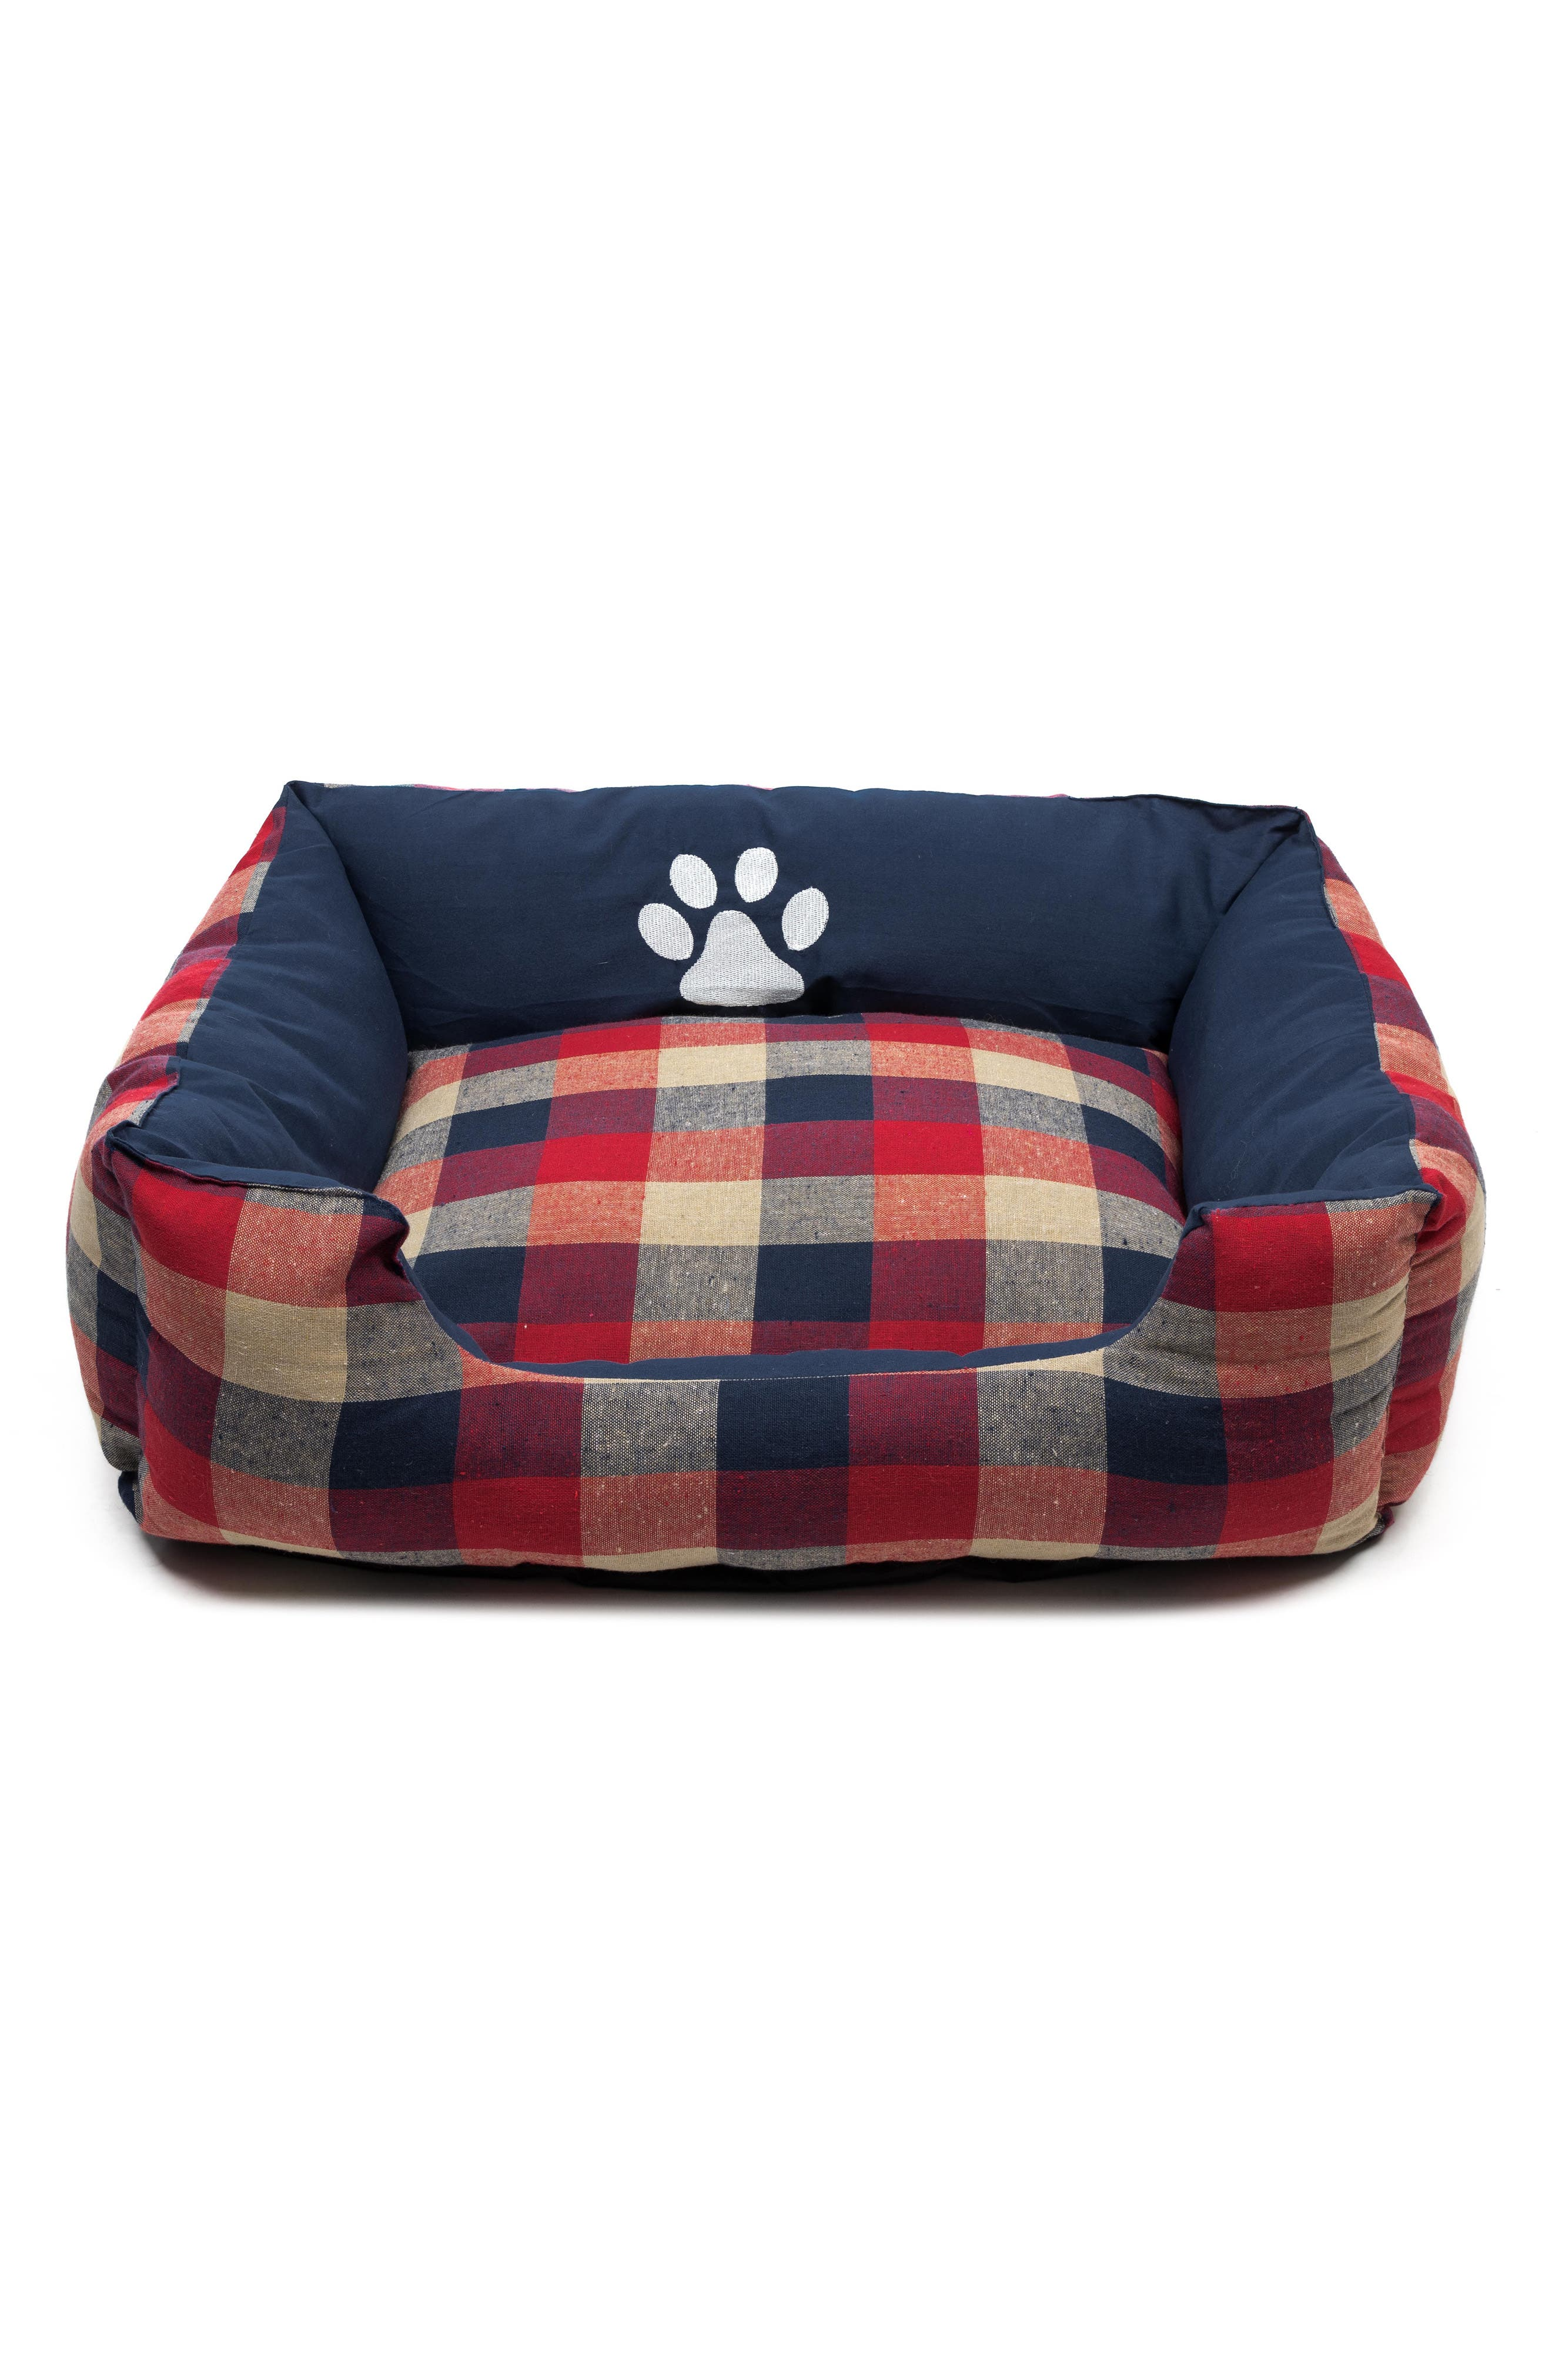 Hasley Square Pet Bed,                         Main,                         color, Red-Navy